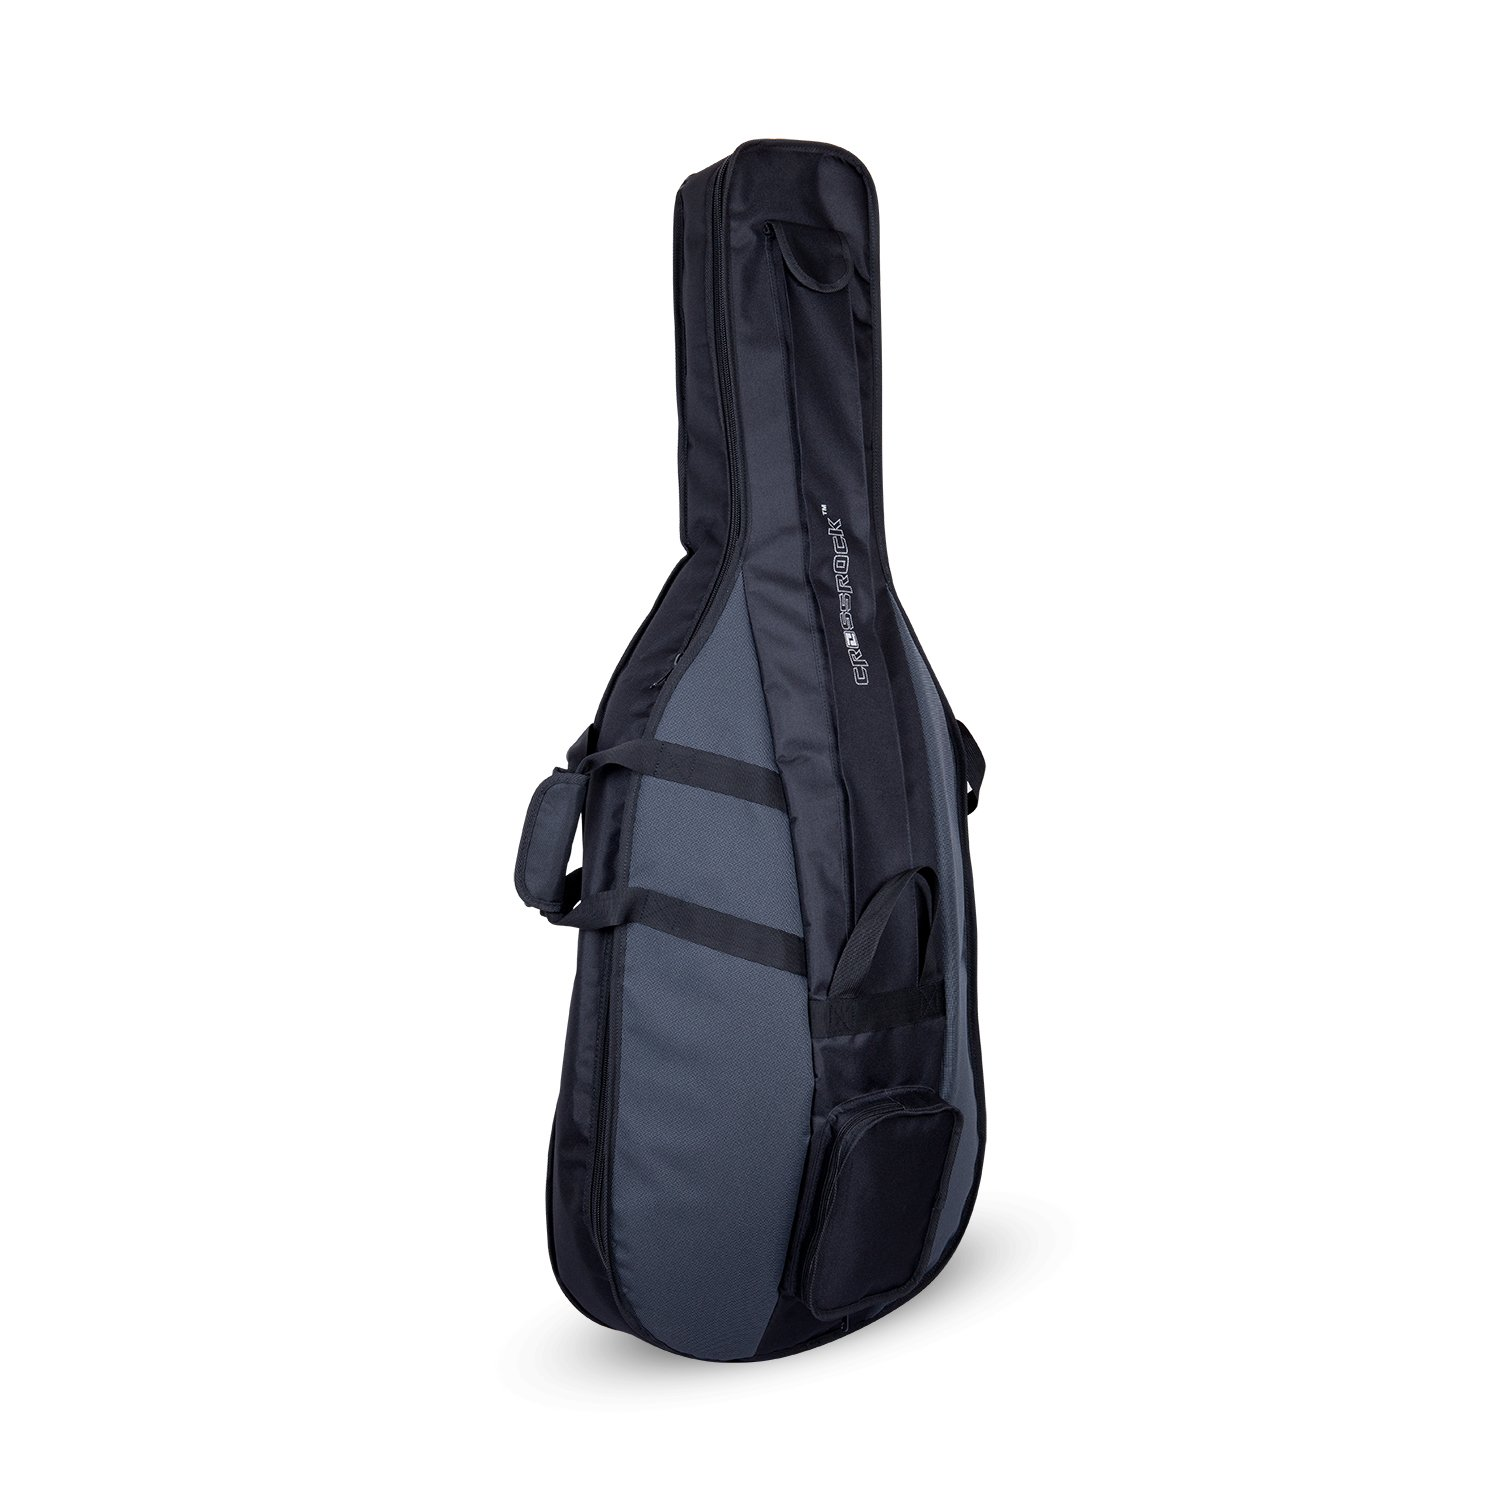 4/4 Cello Gig Bag - Standard Series Black/Grey by Crossrock (Image #1)